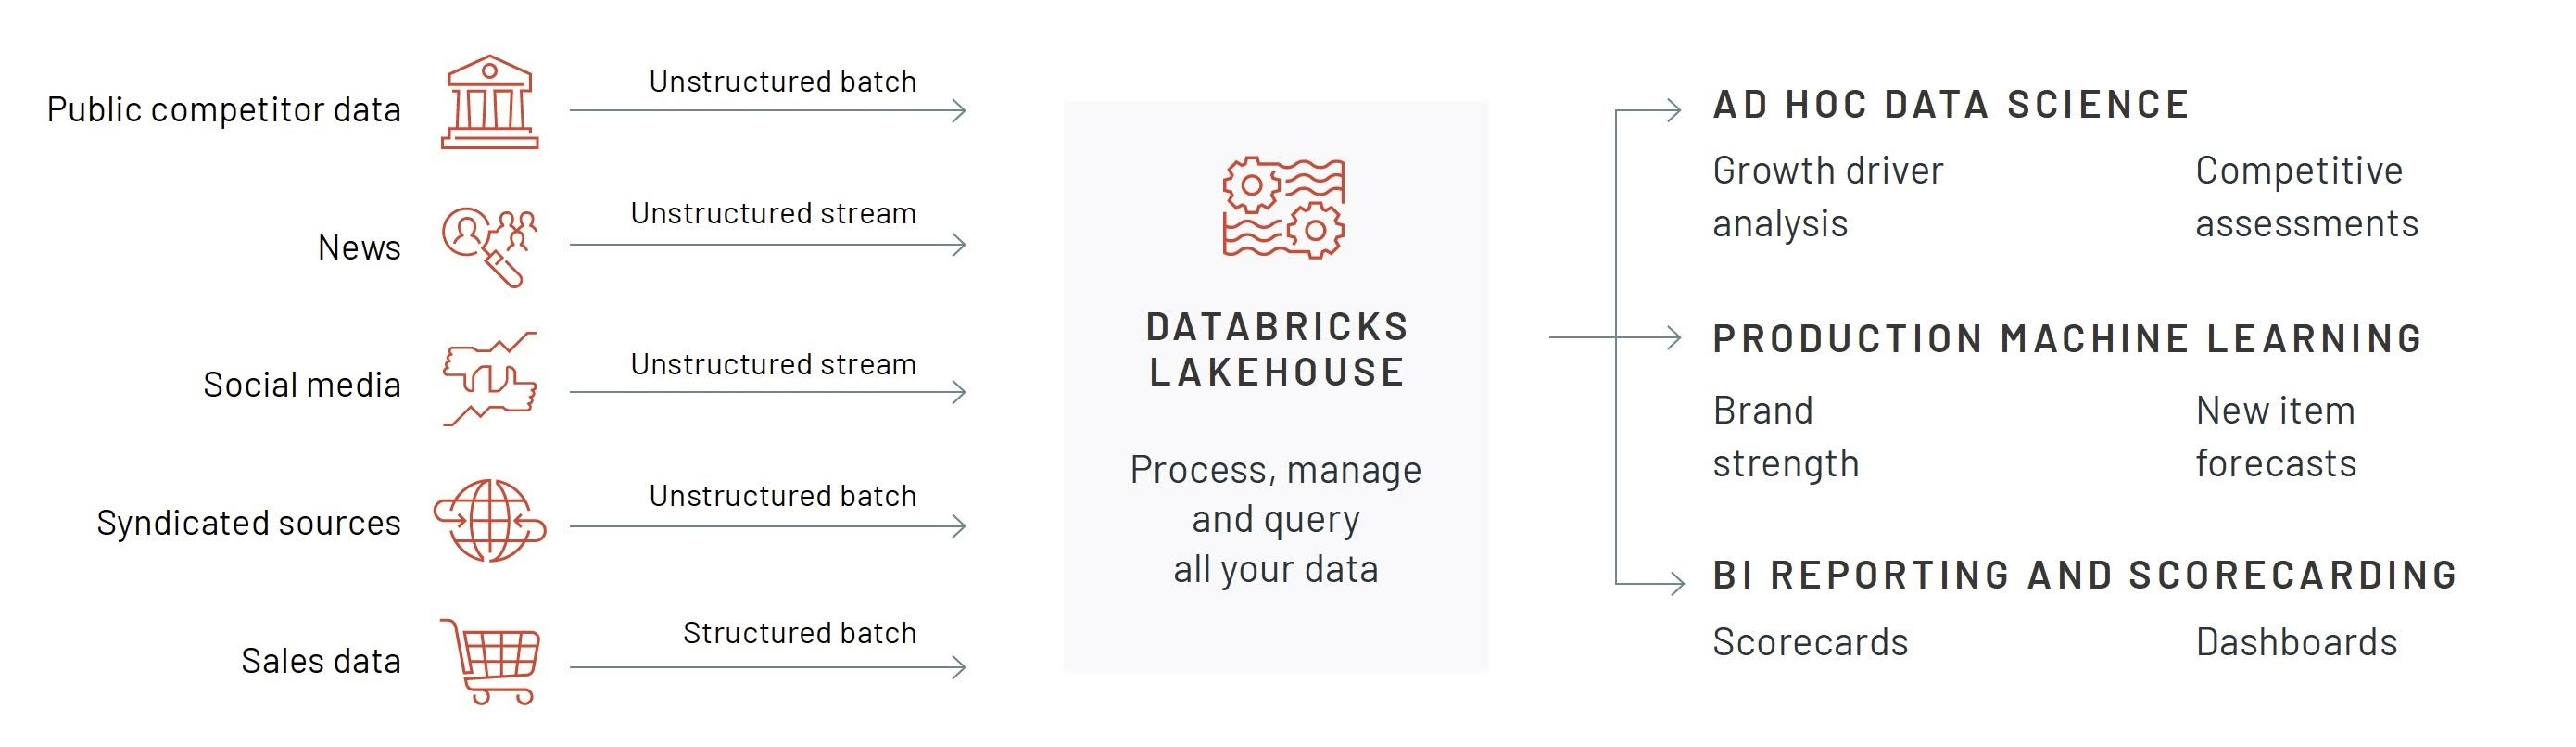 Databricks provides a Lakehouse Platform that helps retail and consumer brands simplify data and AI — accelerating omnichannel innovation.